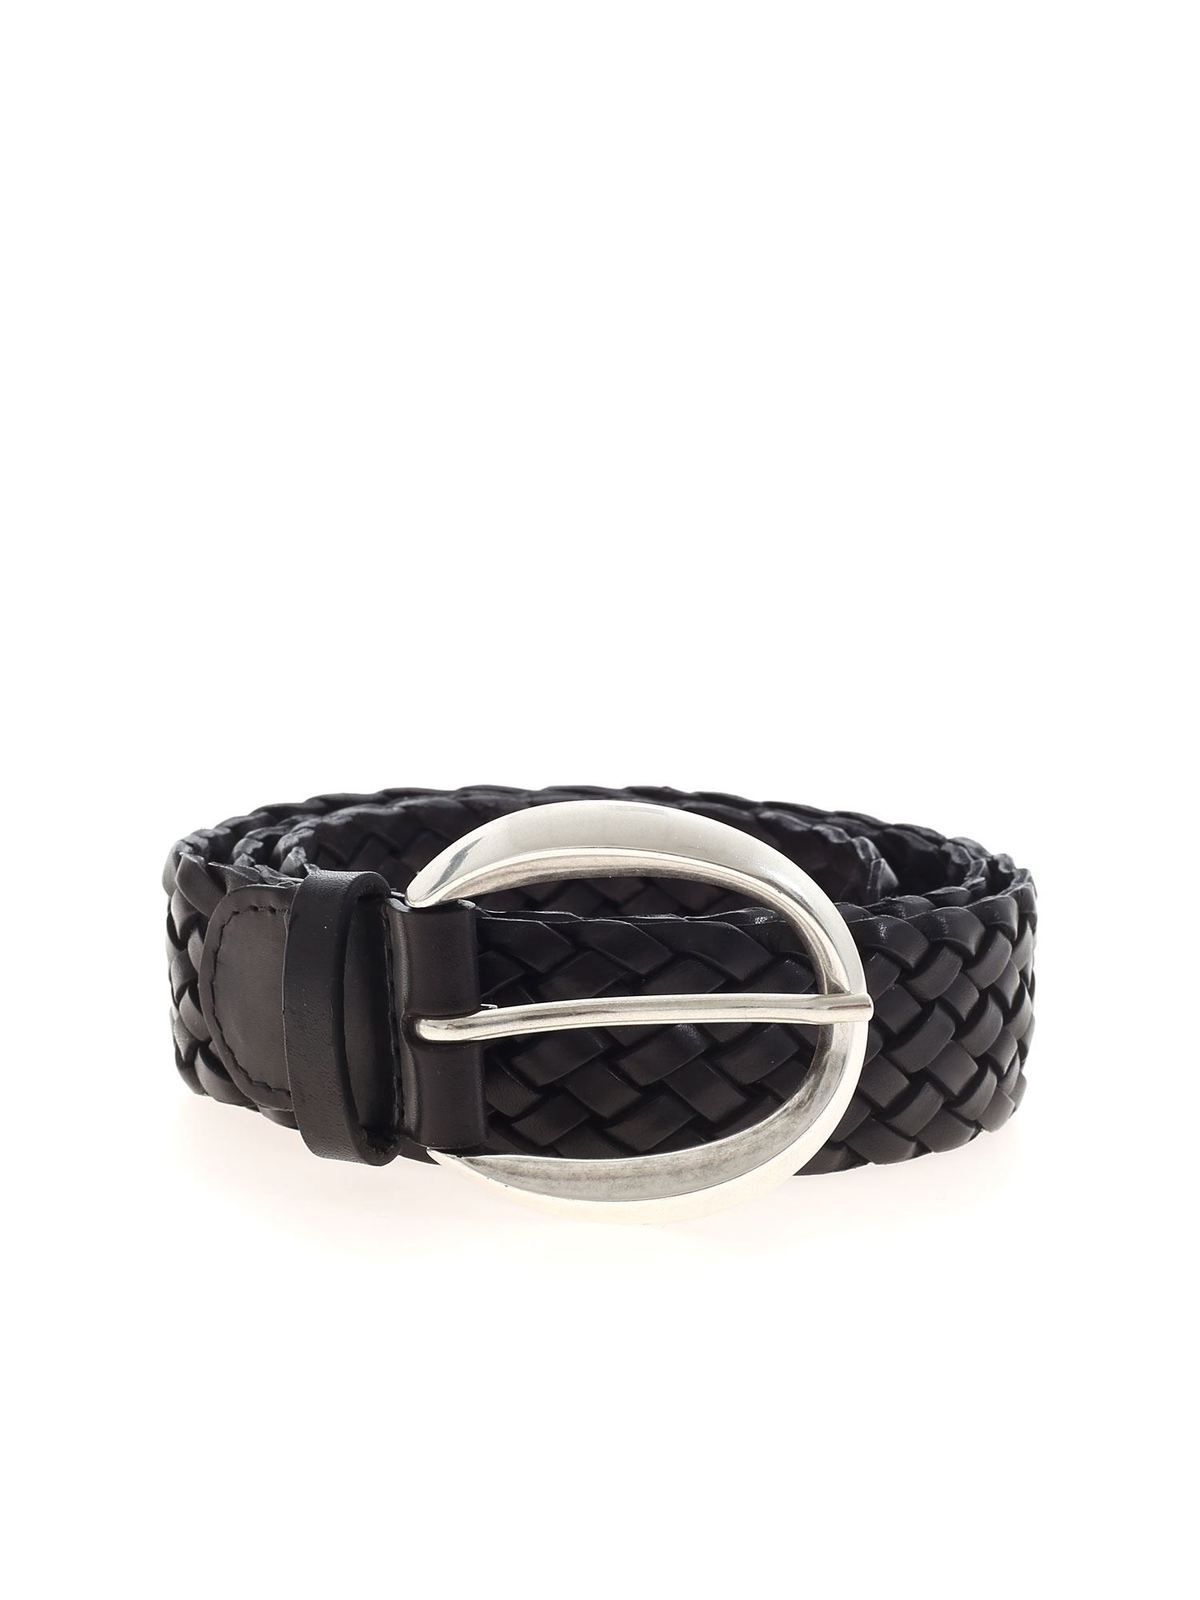 Orciani WOVEN LEATHER BELT IN BLACK